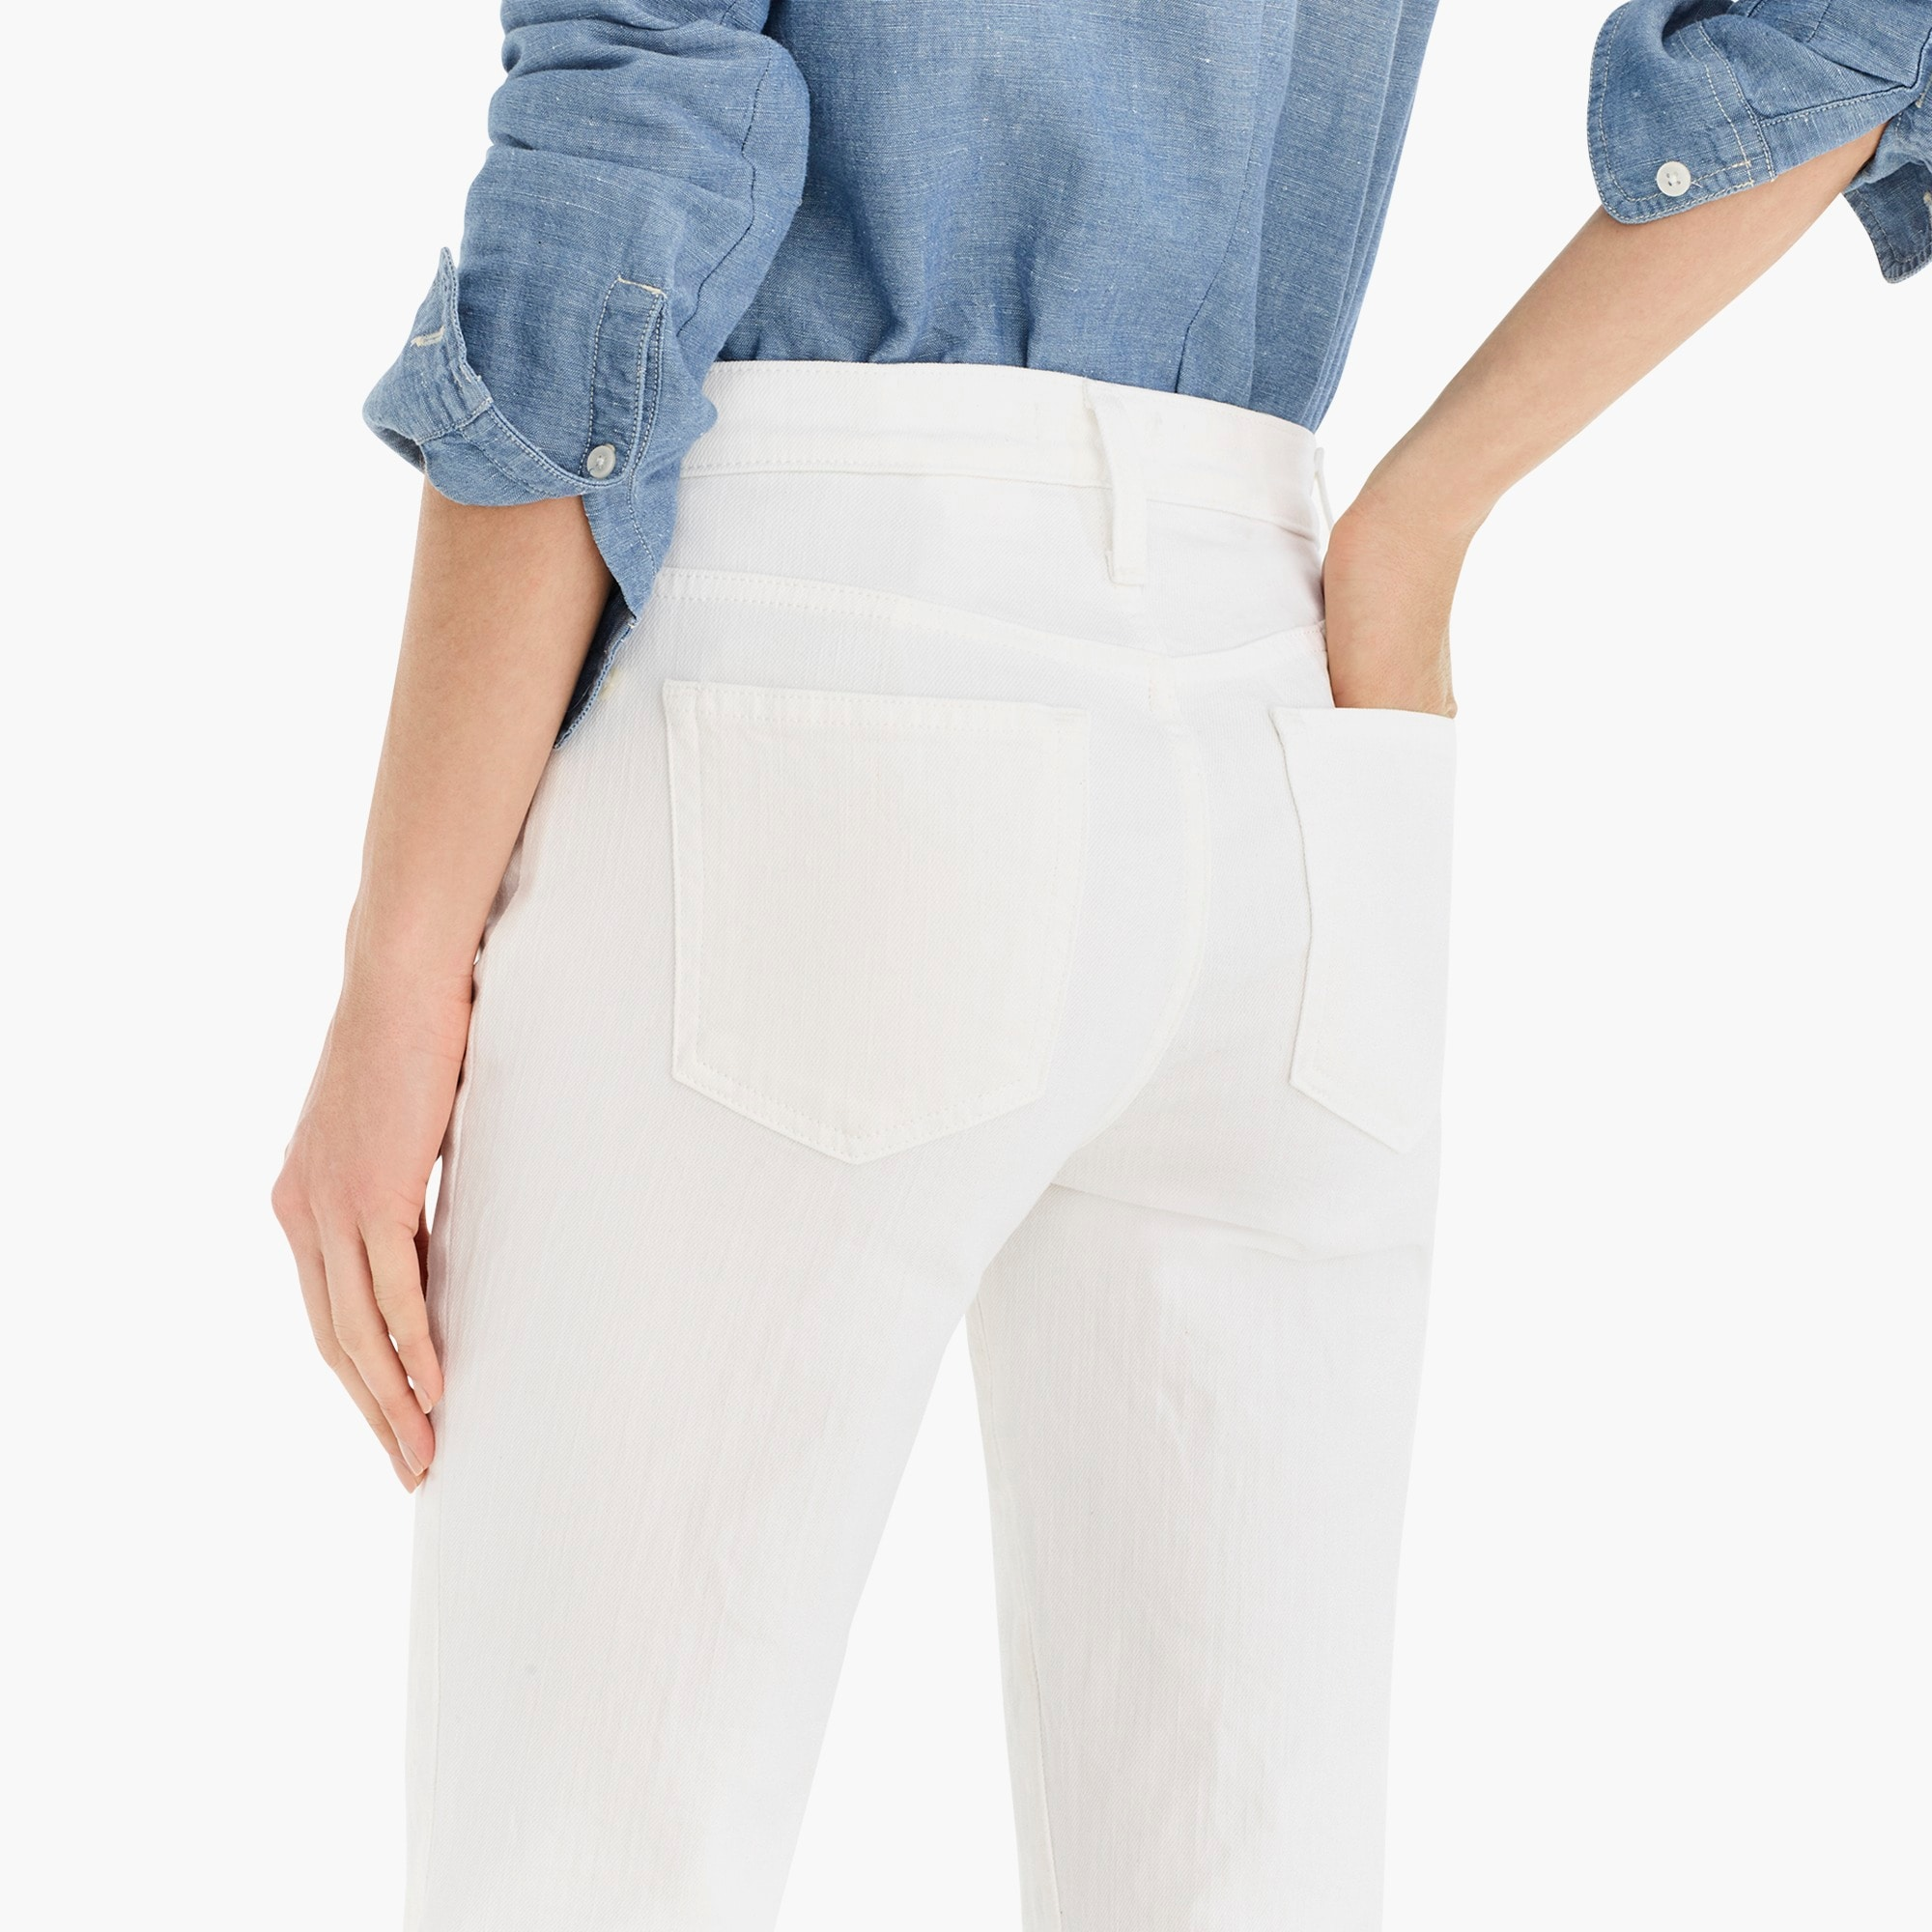 Petite slim broken-in boyfriend jean in white